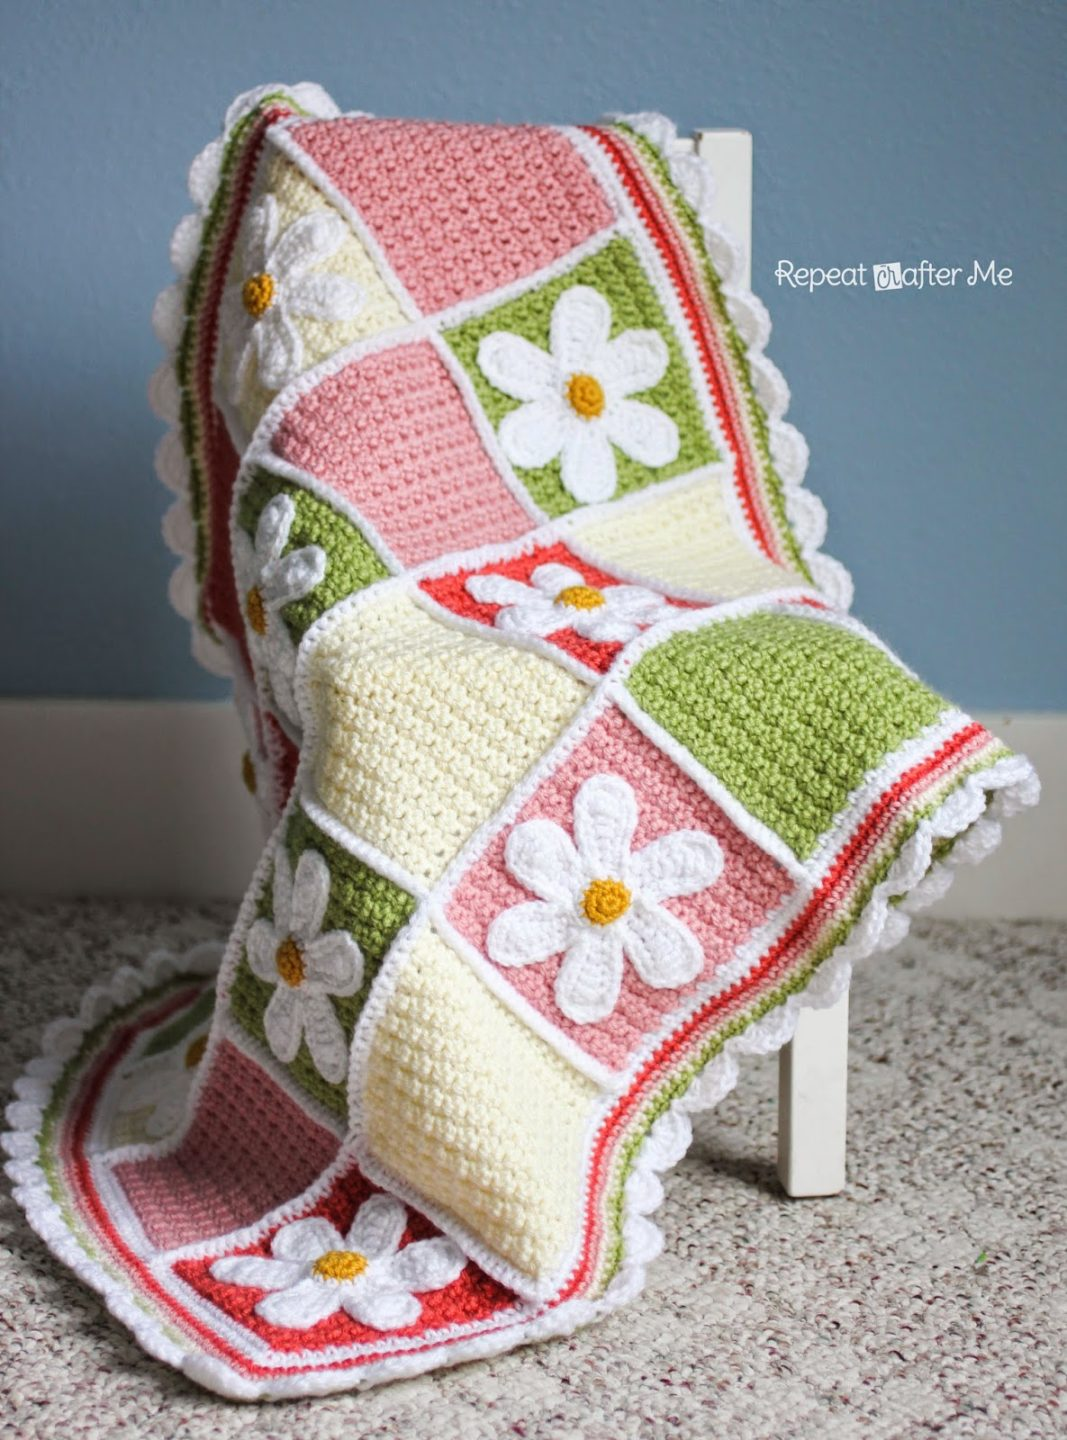 Free Crochet Quilt Afghan Patterns : Crochet Daisy Afghan - Repeat Crafter Me